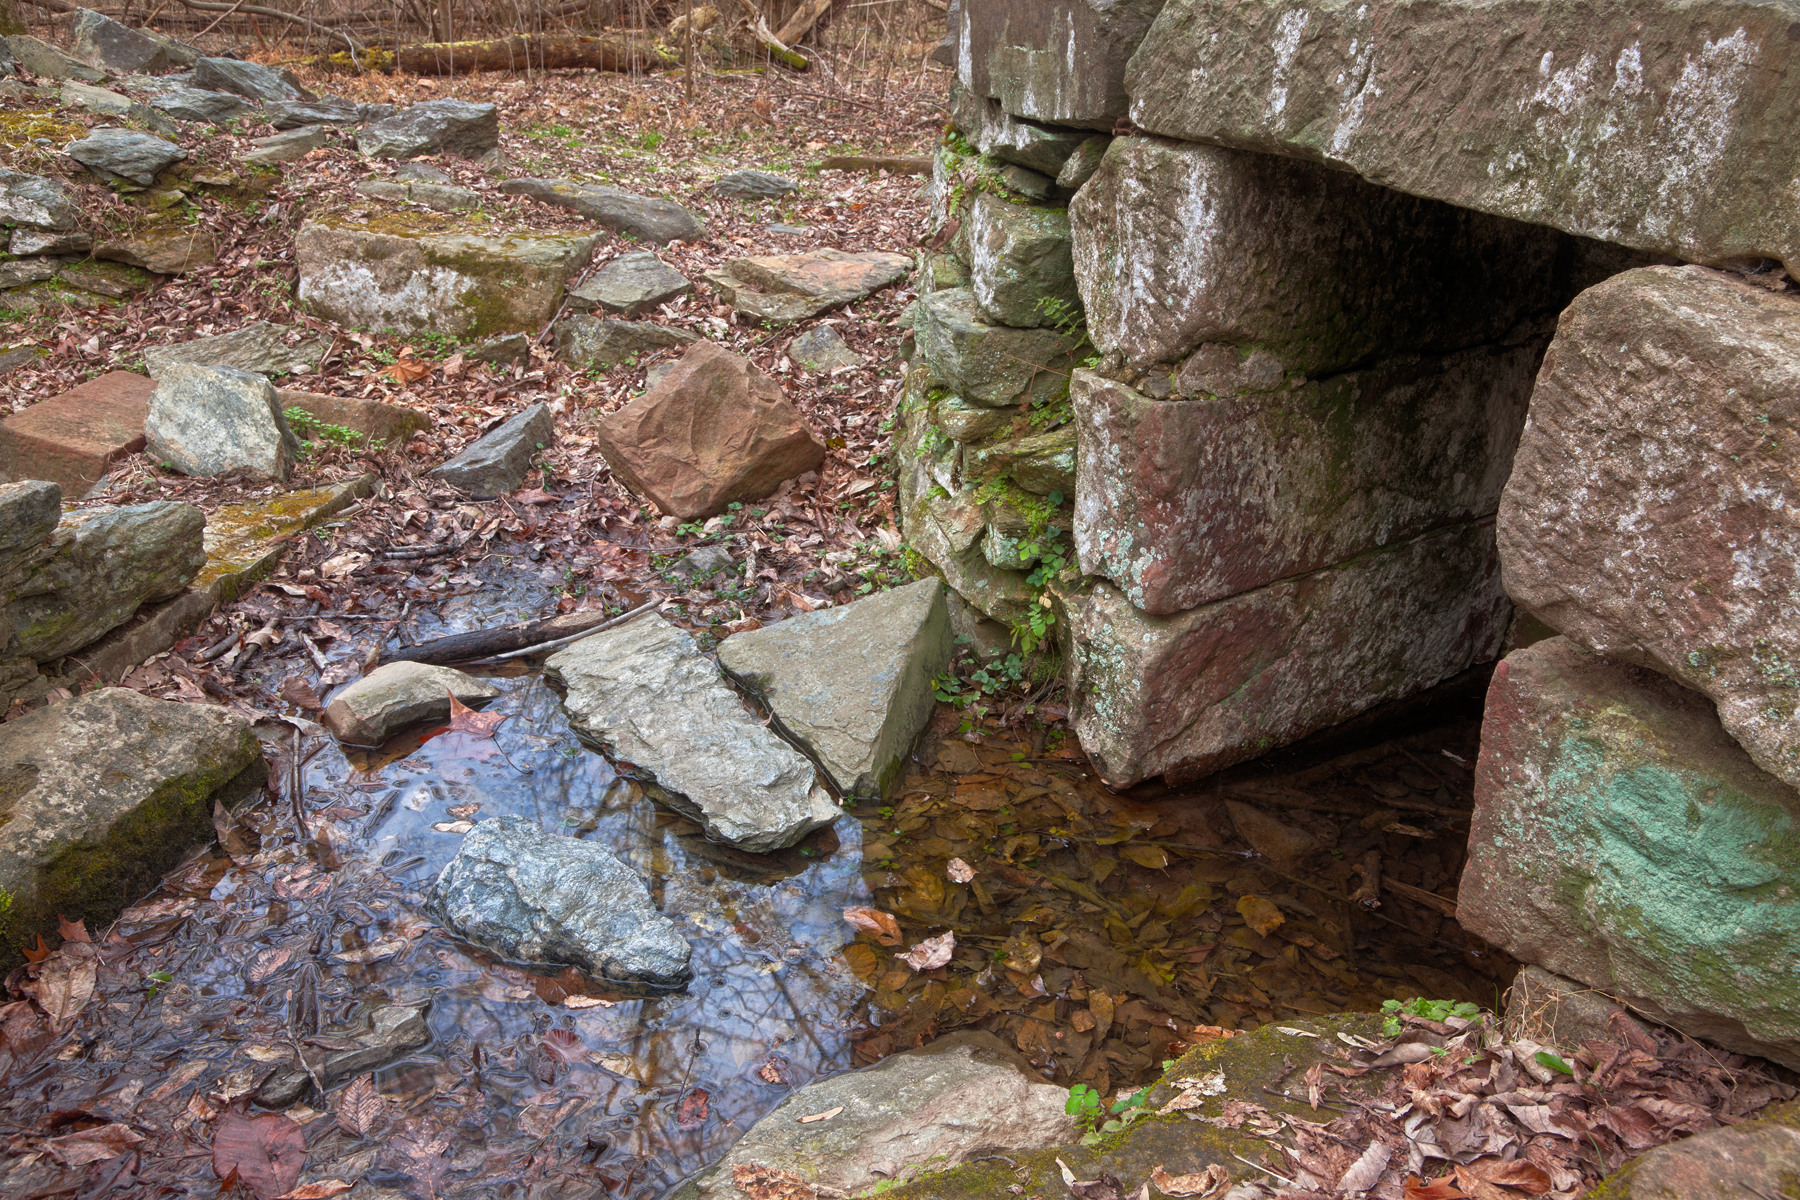 Forest ruins - hdr photo